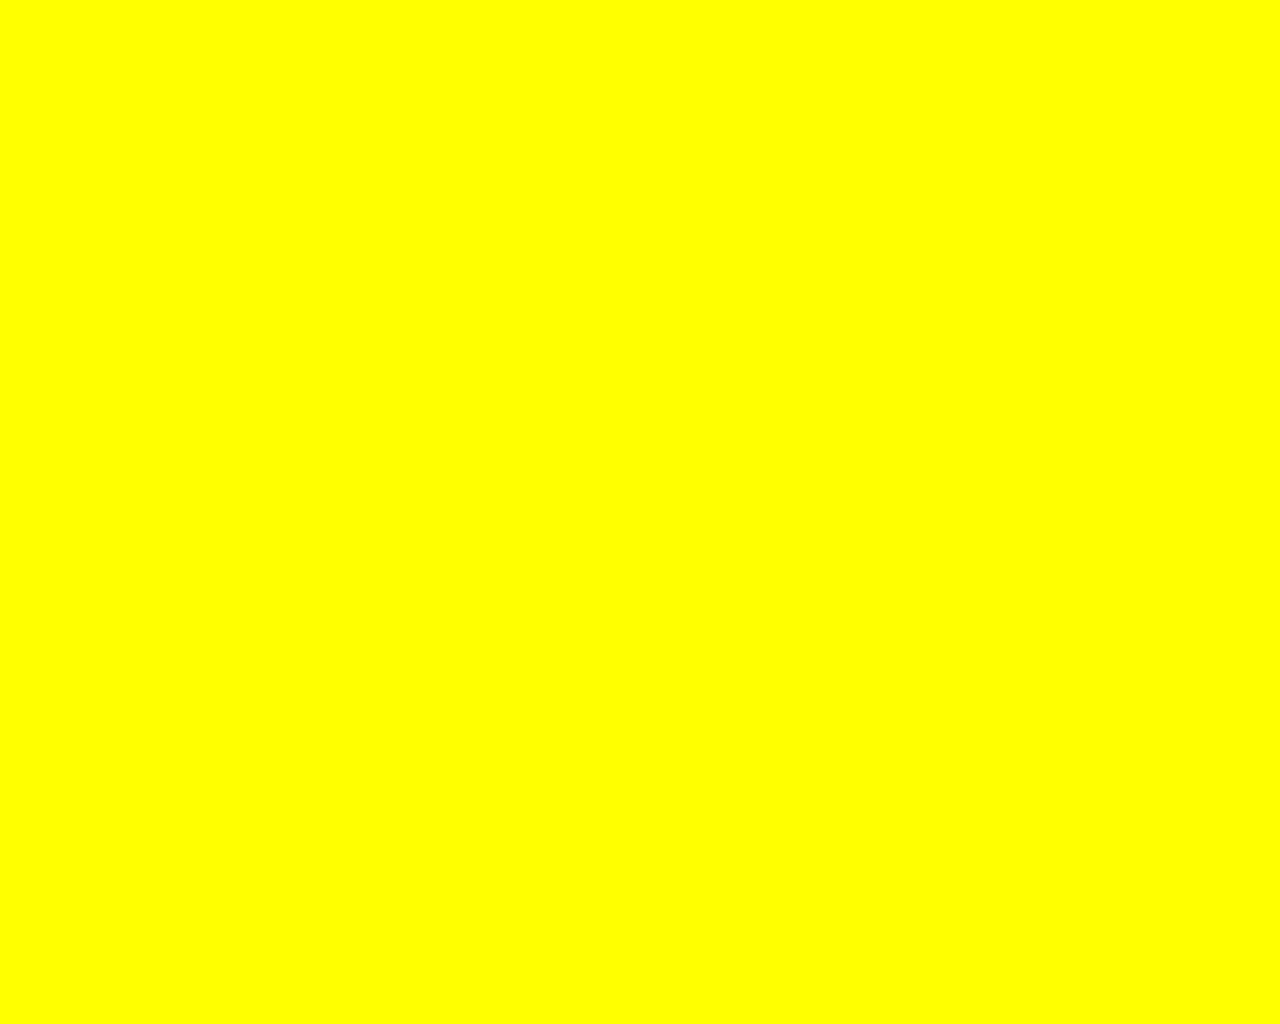 1280x1024 Yellow Solid Color Background